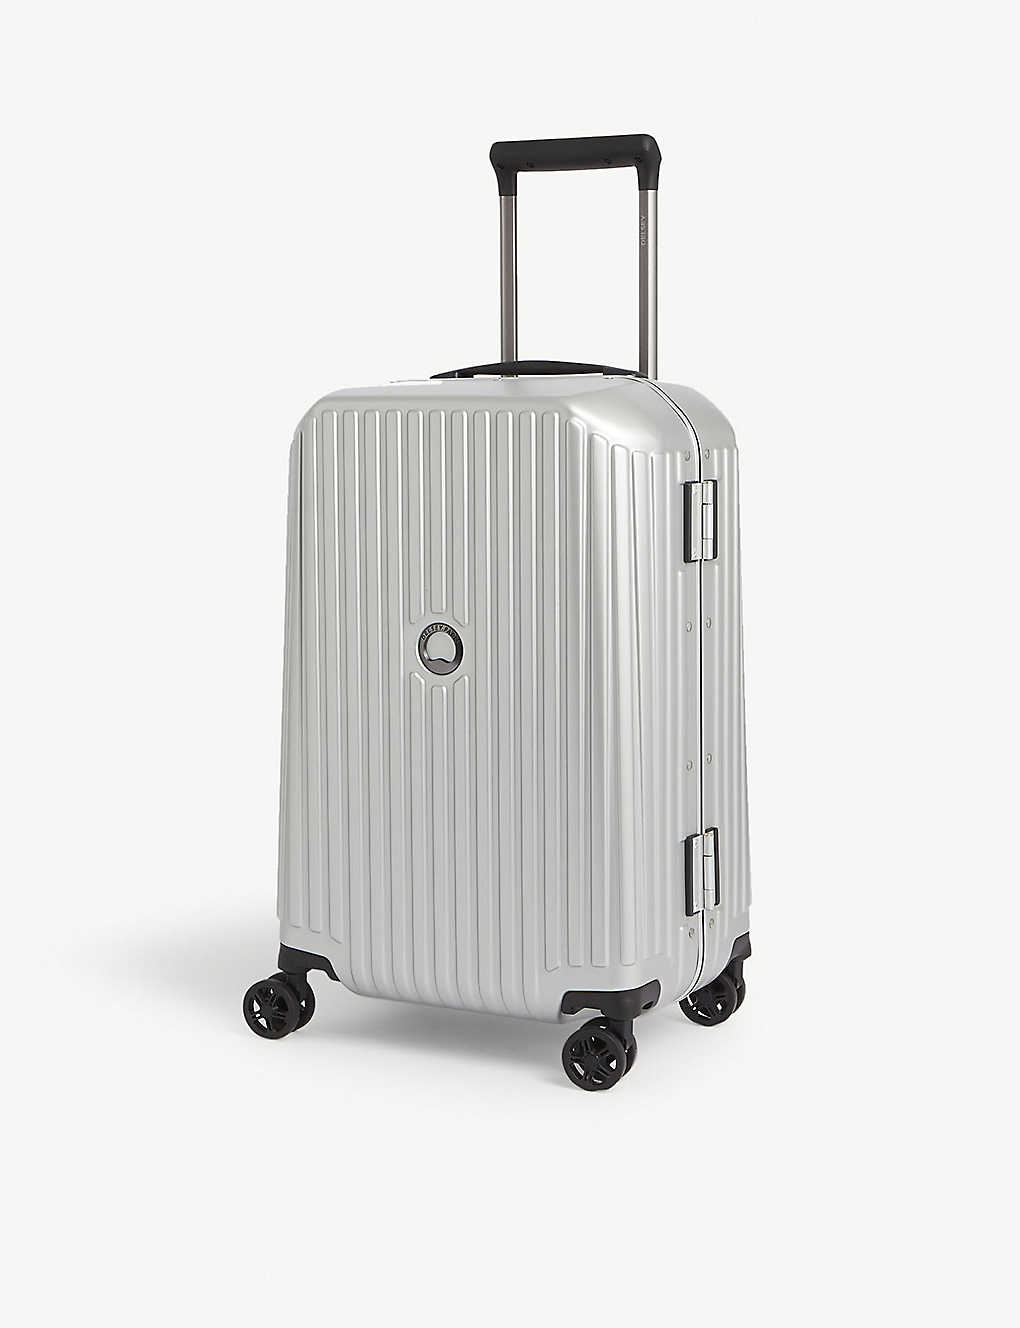 DELSEY: Securitime Frame four-wheel spinner suitcase 55cm